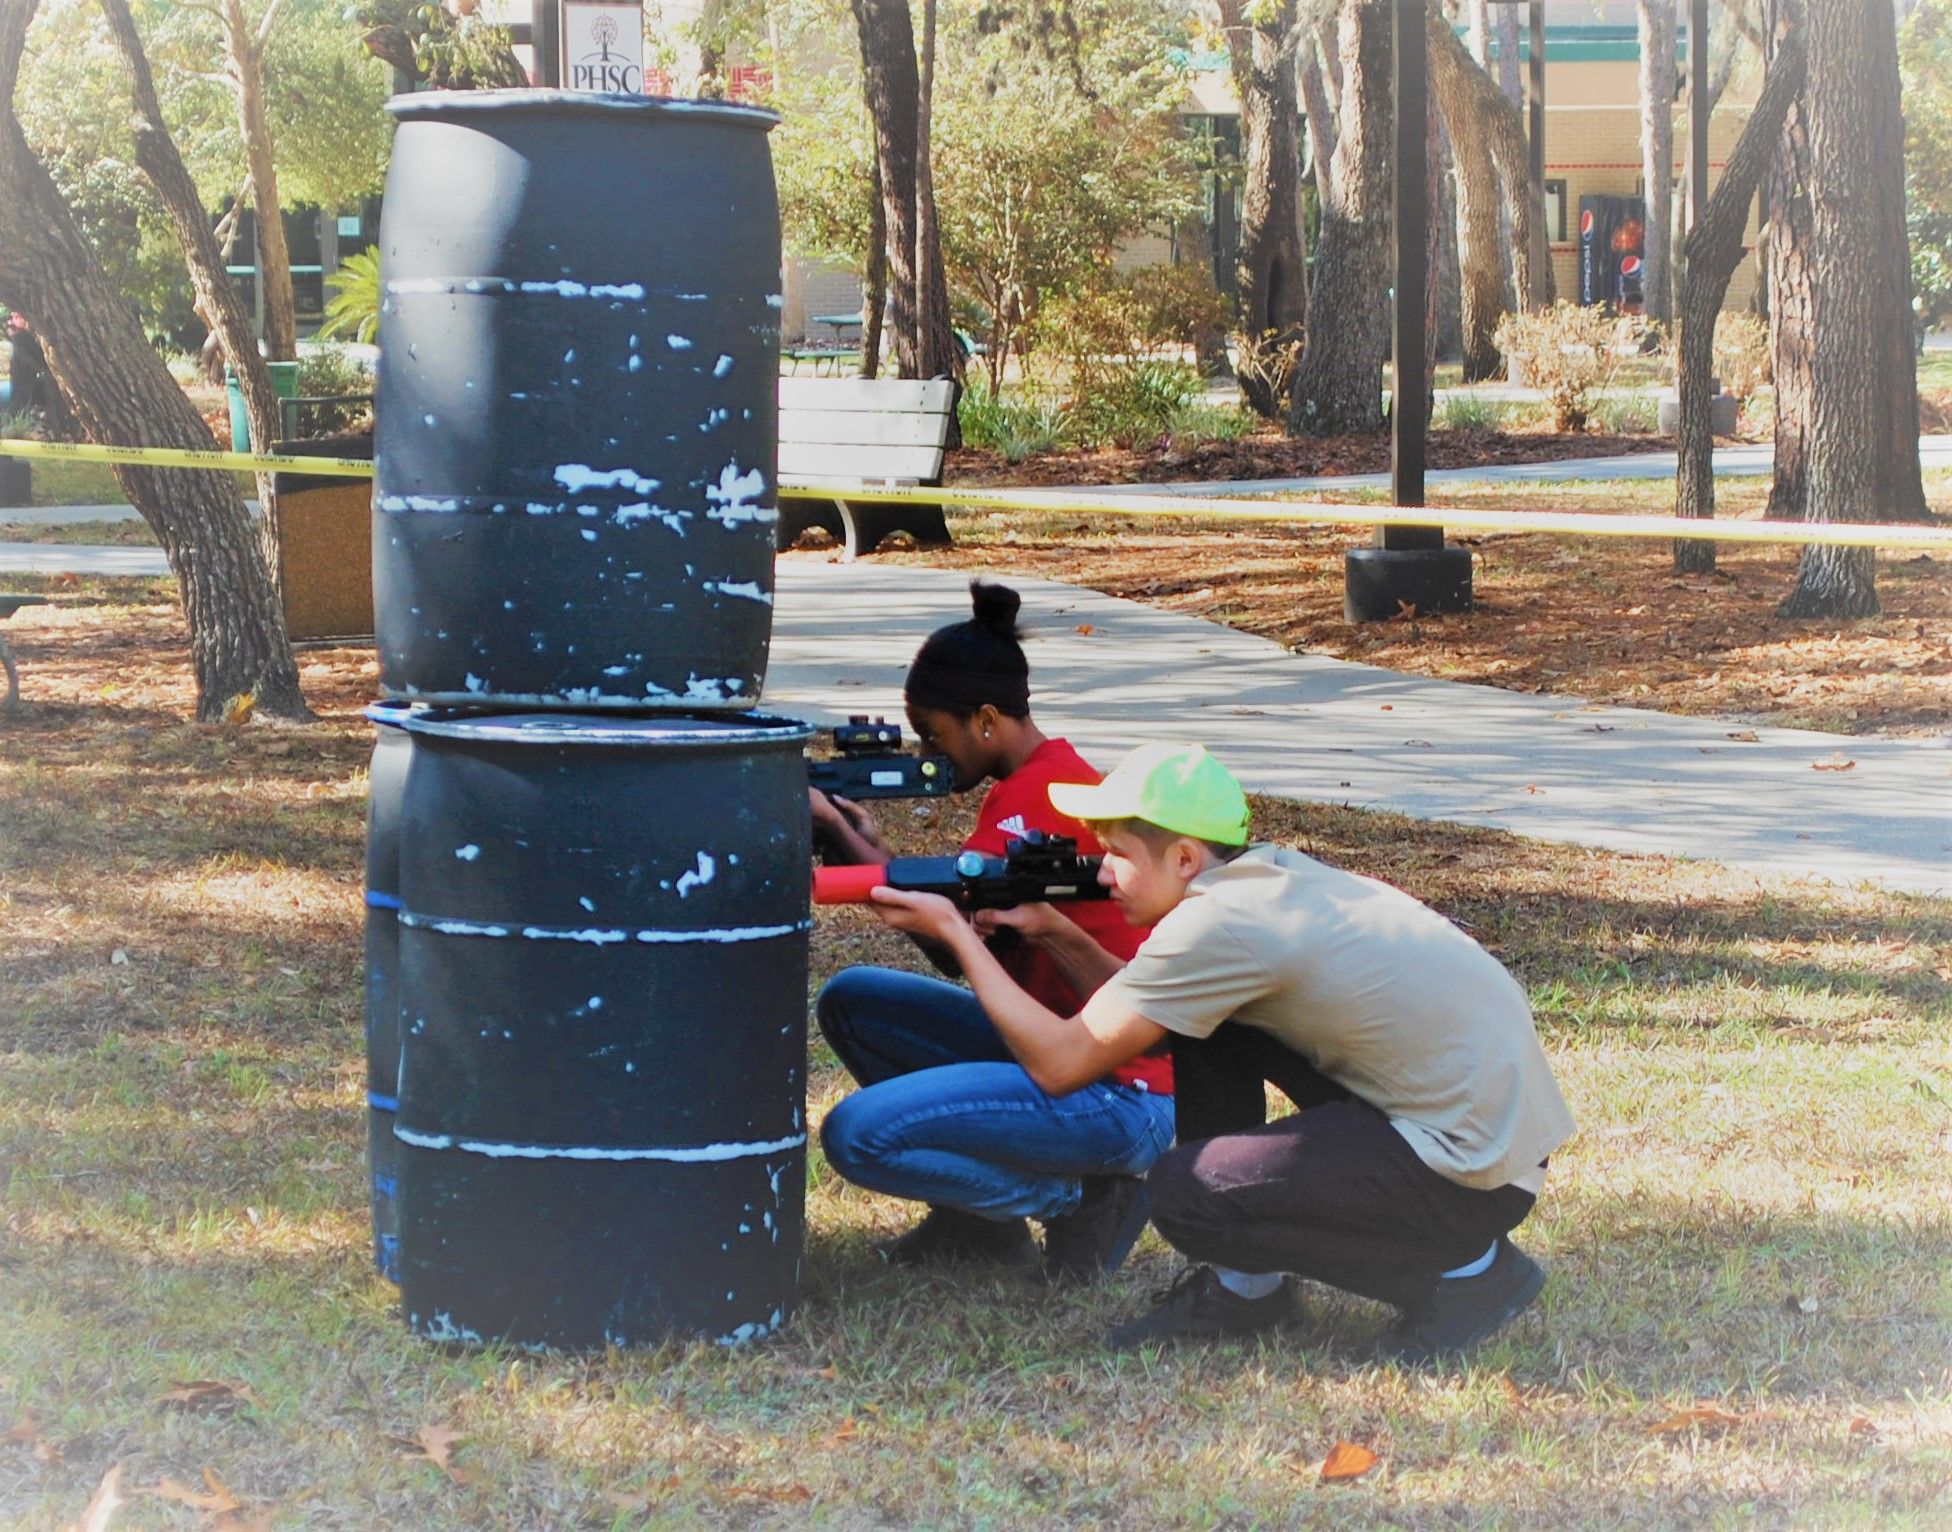 College Events in Florida - Stealth Mobile Laser Tag (61)